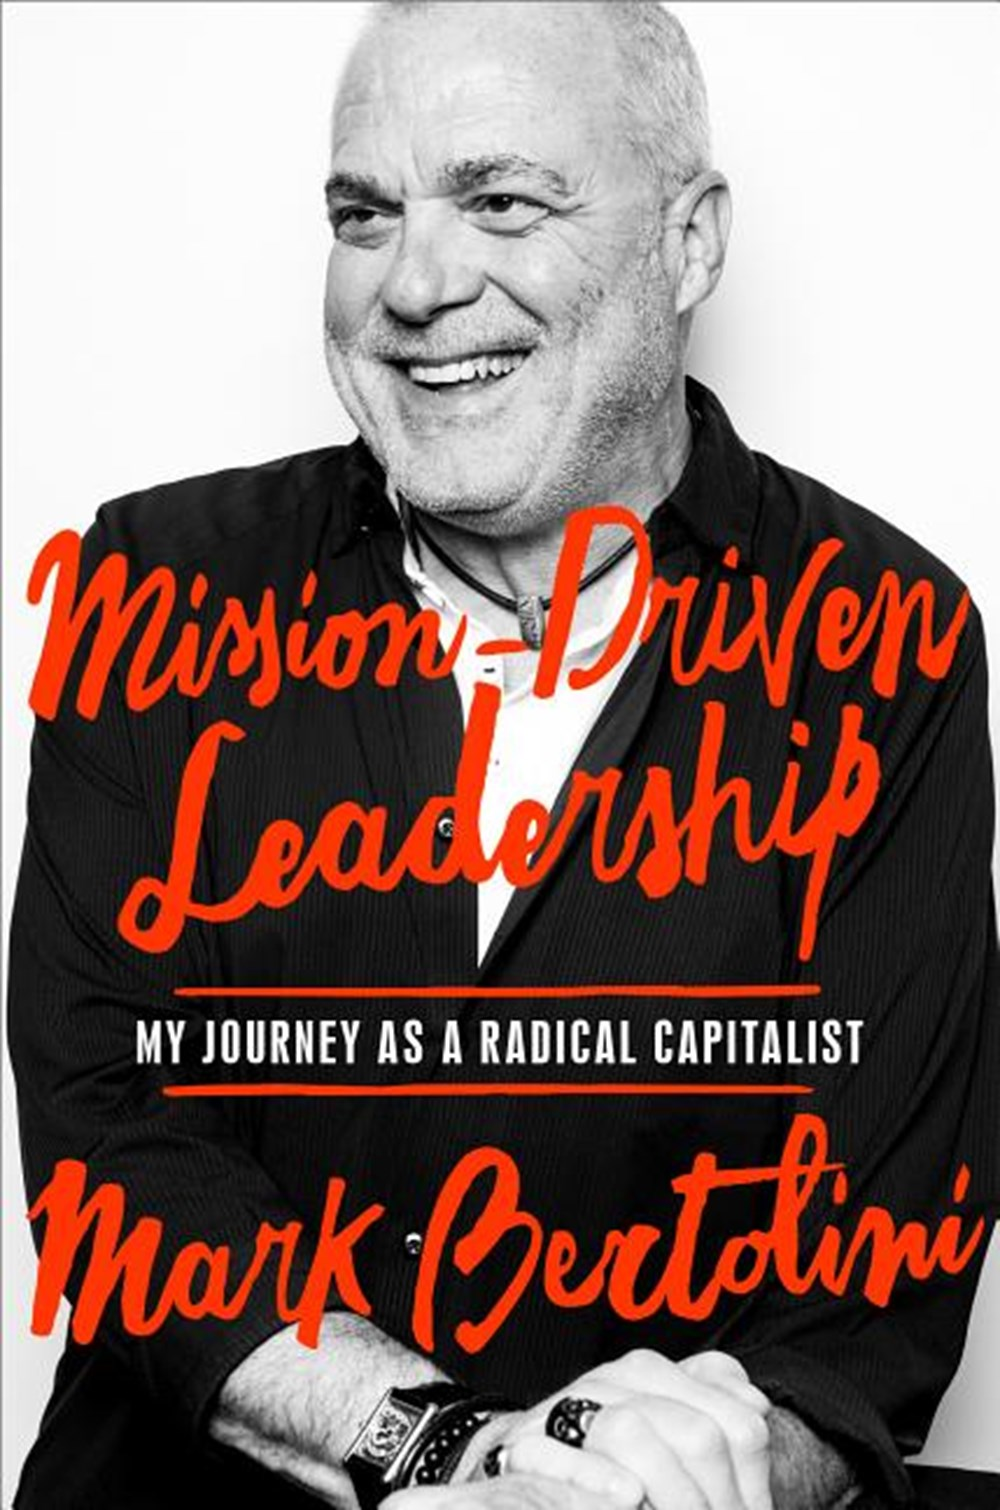 Mission-Driven Leadership My Journey as a Radical Capitalist